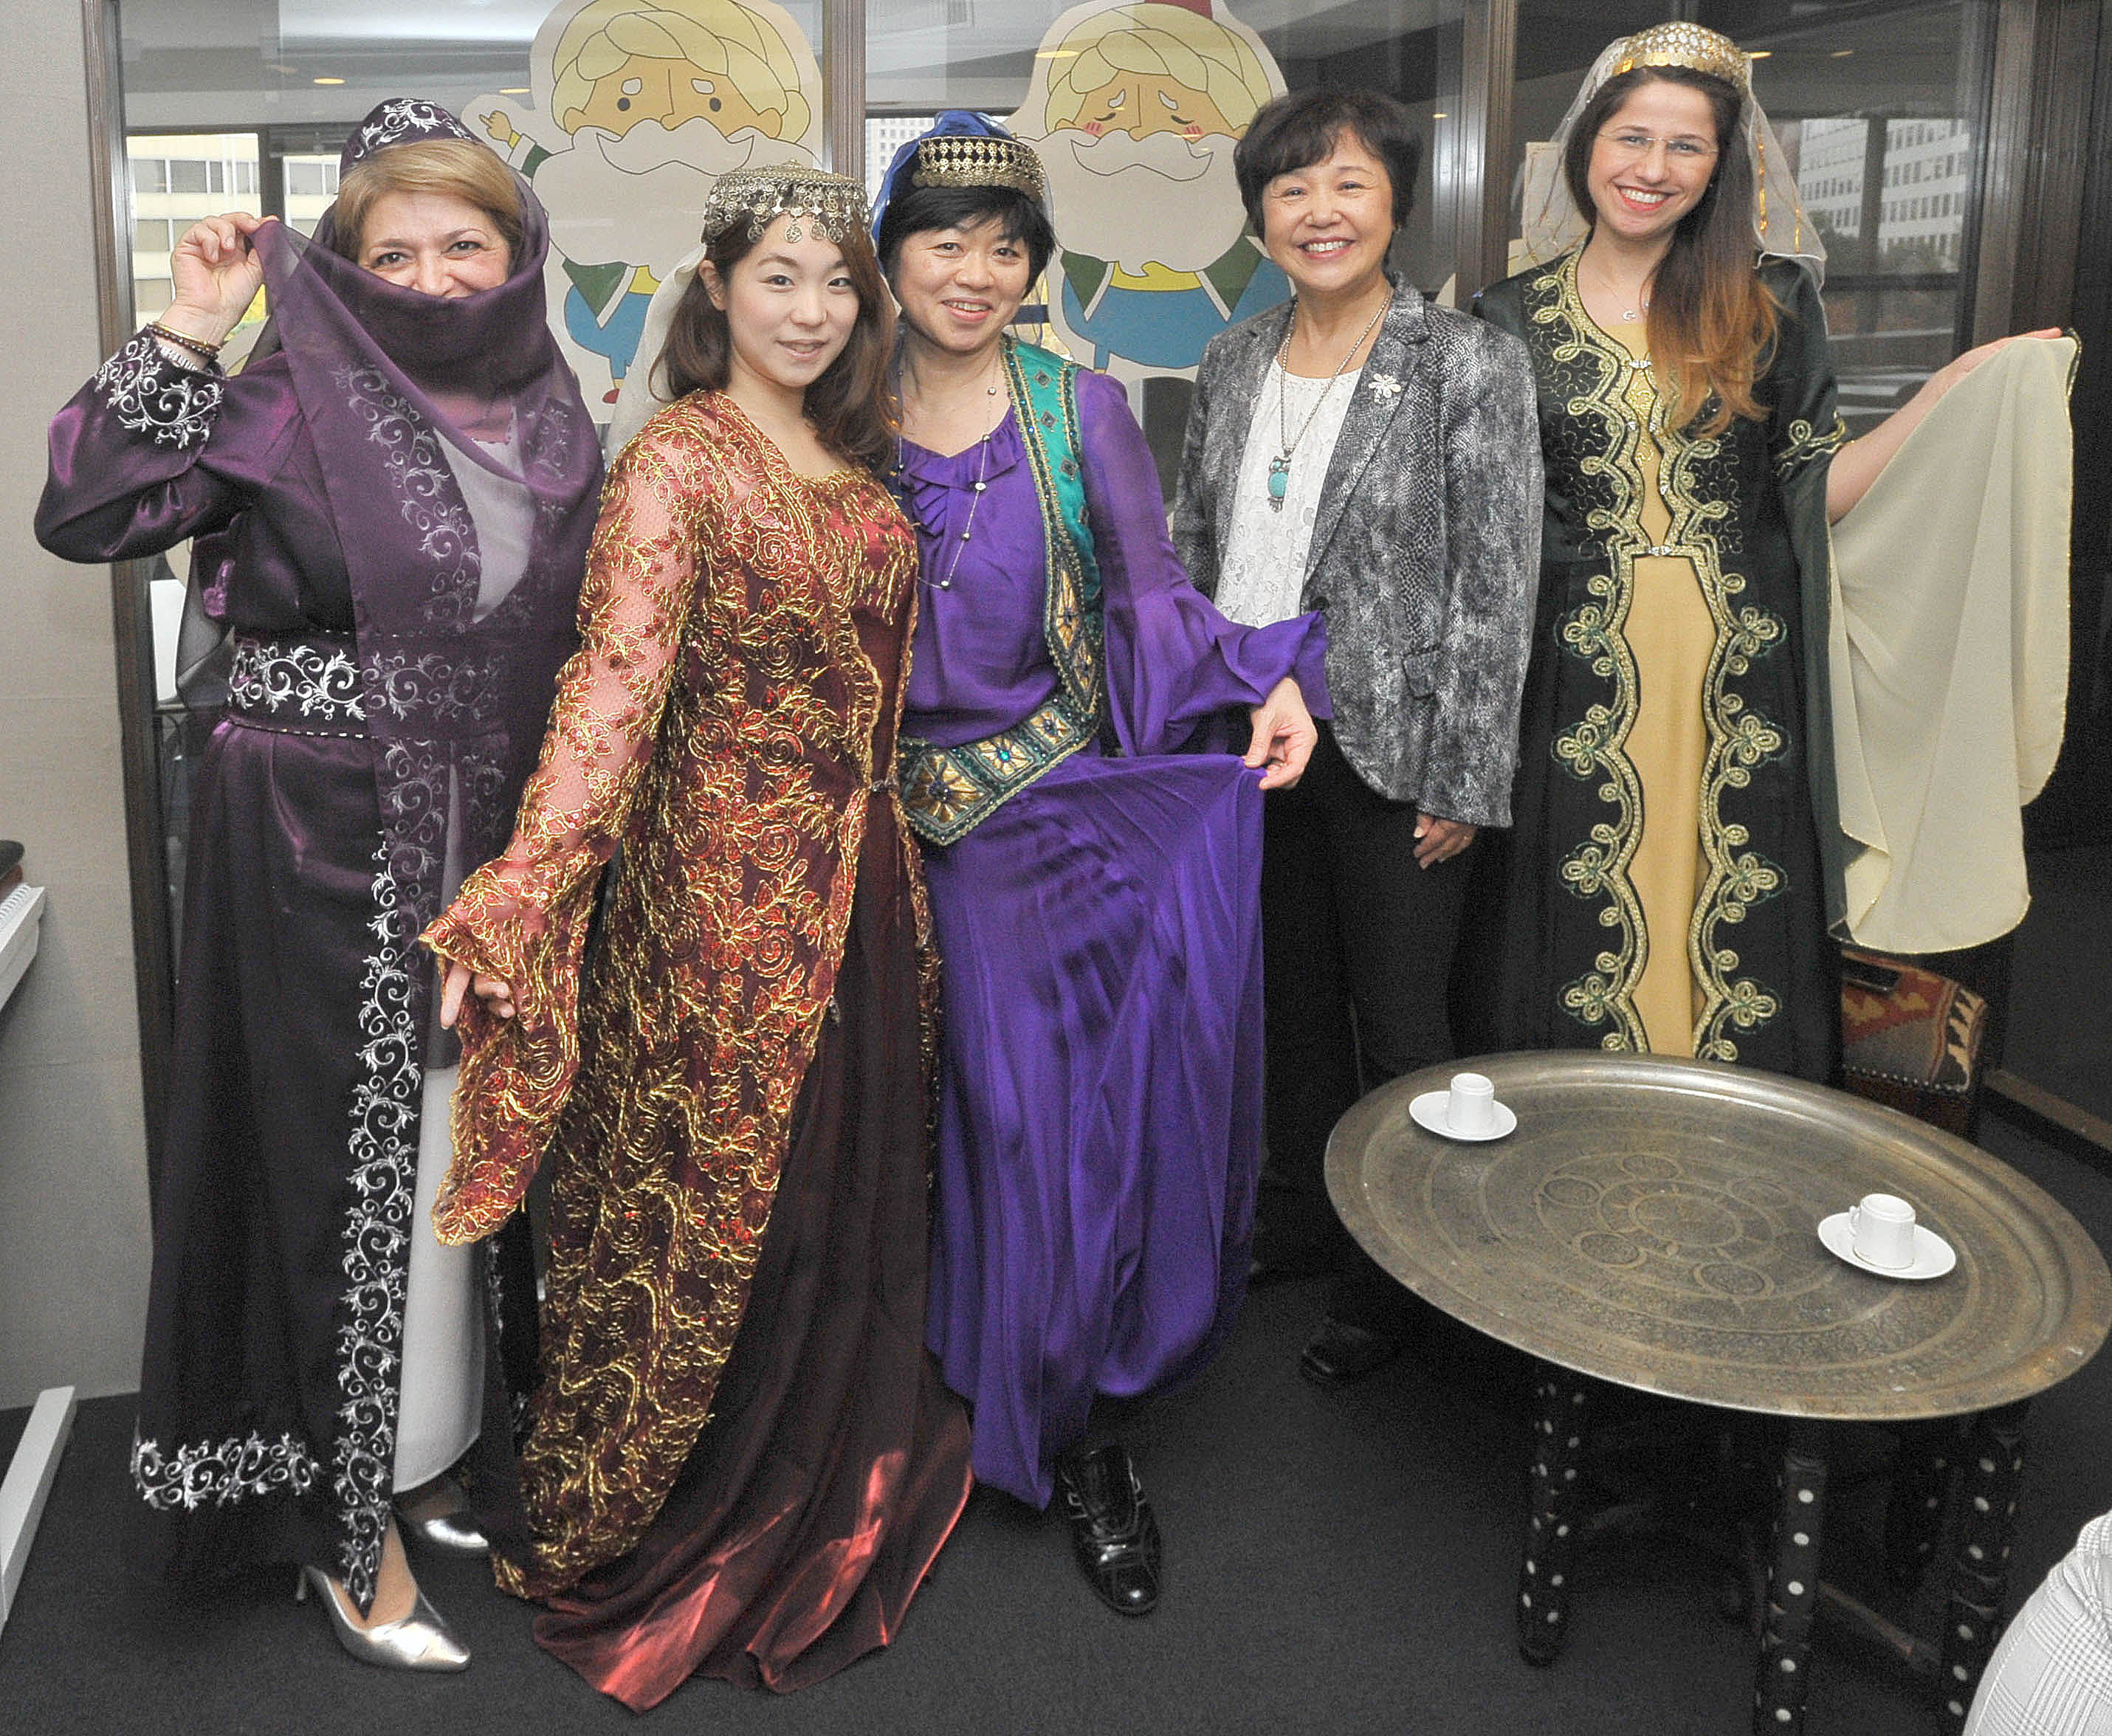 Kumiko Meric (second from right), the wife of Turkey's ambassador to Japan, and Japan-Turkish Womens Club members pose with people in traditional Turkish folk costumes at a celebration of Turkish culture, organized by the Japan-Turkish Womens Club, at Yunus Emre Institute in Tokyo on Nov. 27. | YOSHIAKI MIURA